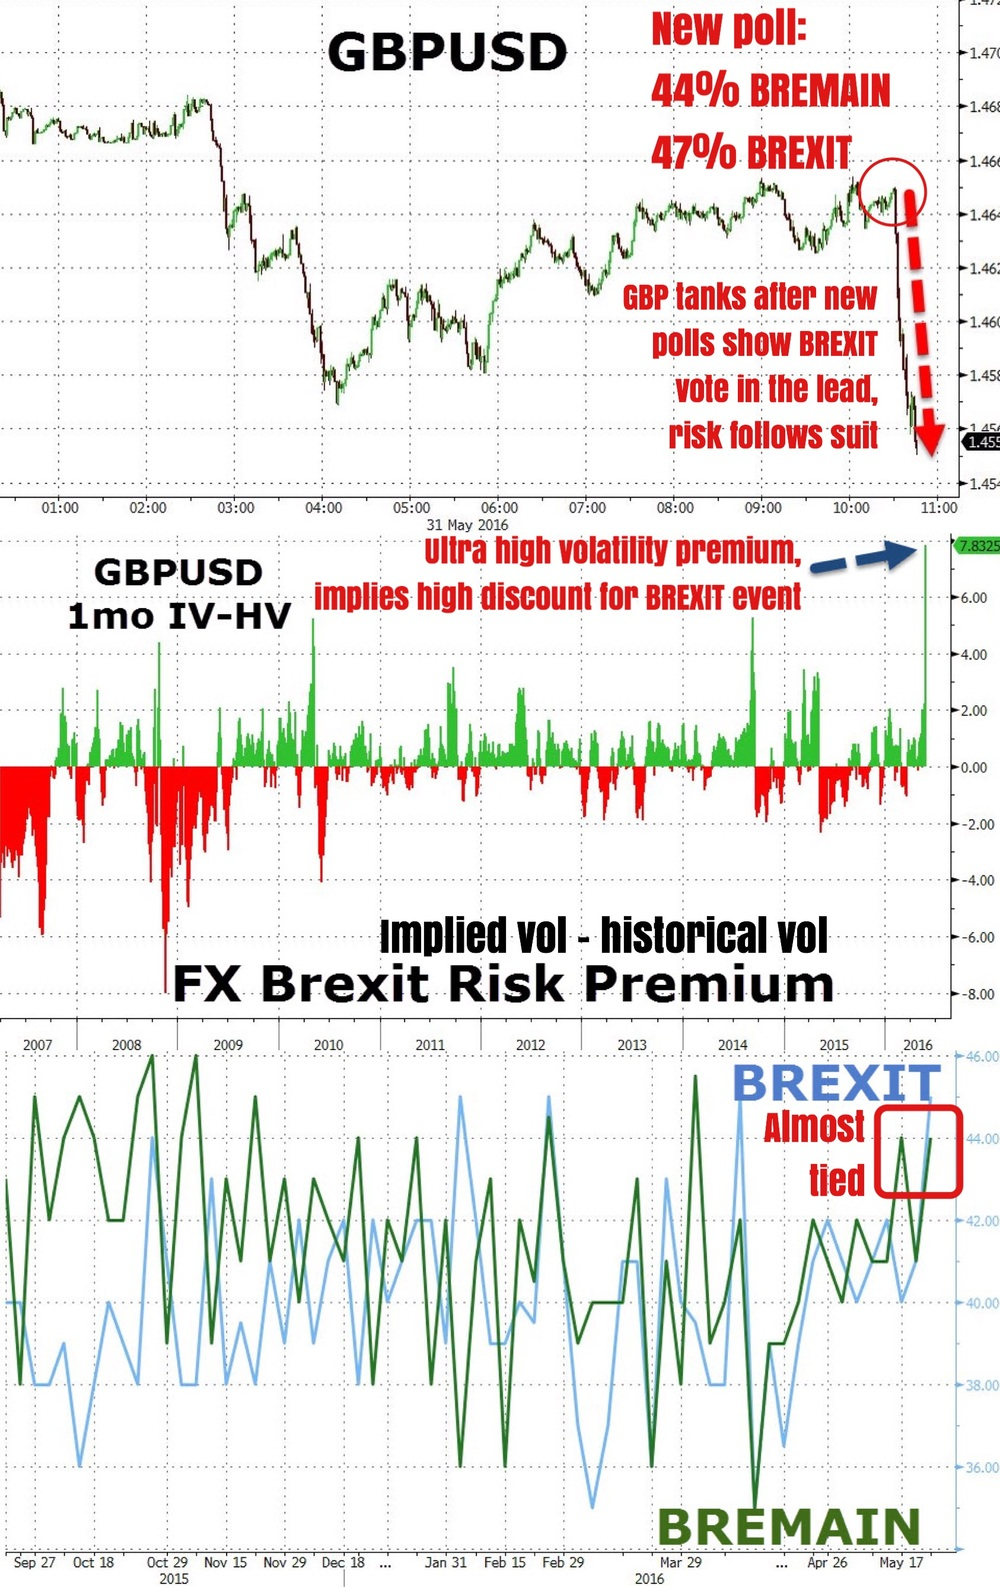 """New opinion poll results surfaced in Britain Tuesday showing a 47% vote for leaving the EU (Brexit), and a 44% vote for remaining in the EU (Bremain). The news sent GBP crashing 130 pips against the USD and shockwaves across risk markets will global indices all down on the day and for the week. While such poll results are questionable, the consensus is that the Brexit vote is quickly catching up to the conservative.    Regardless of results, the UK referendum is surely one of (if not the most) the nuggets event risks in June and markets will likely continue to trade wildly on every ebb on this event.""    Business Of Finance on Facebook, 1 June 2016"